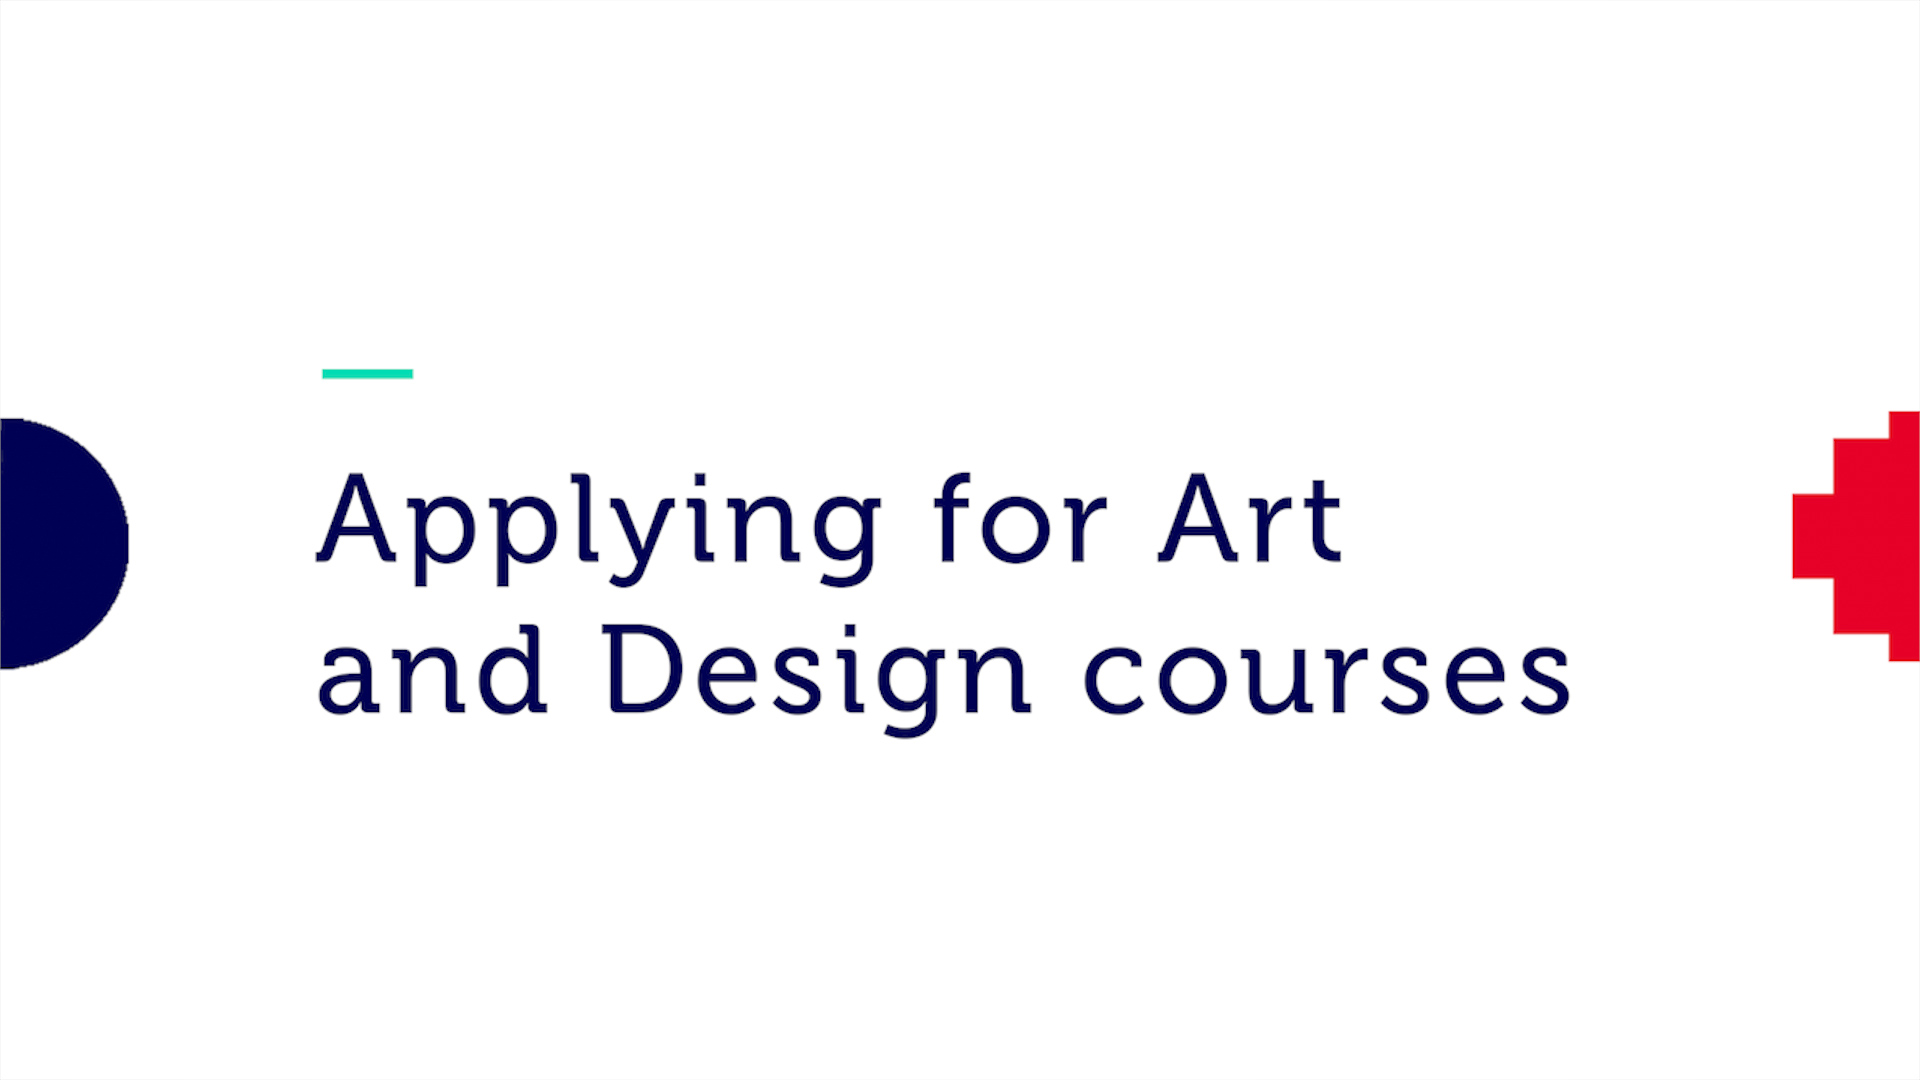 Applying for Art and Design courses